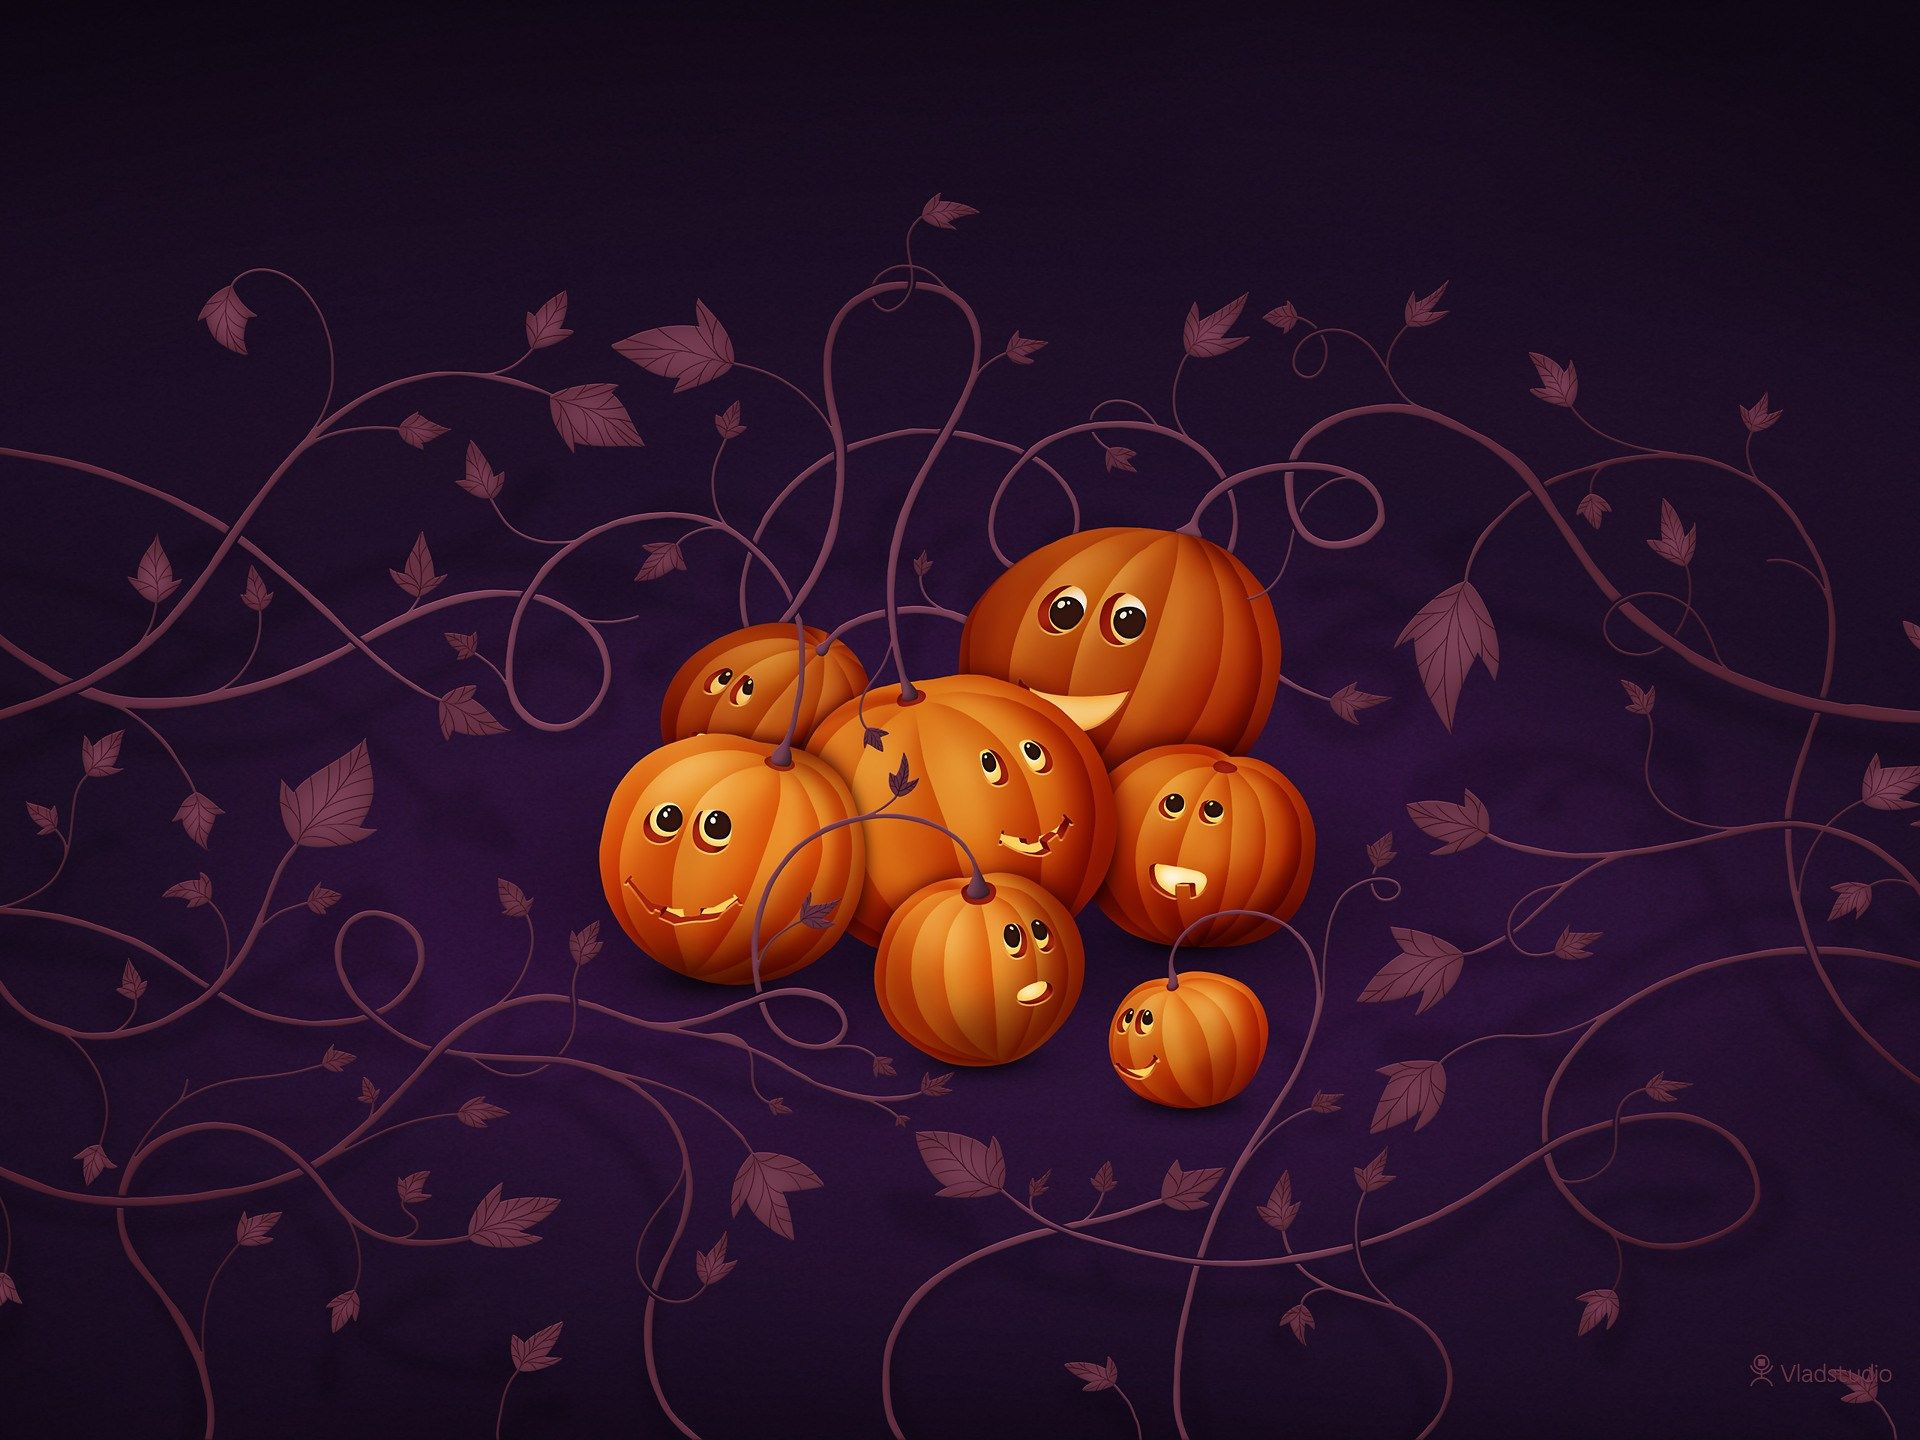 1920x1440 Free Download Pictures Of Halloween Halloween Desktop Wallpaper Halloween Wallpaper Pumpkin Wallpaper